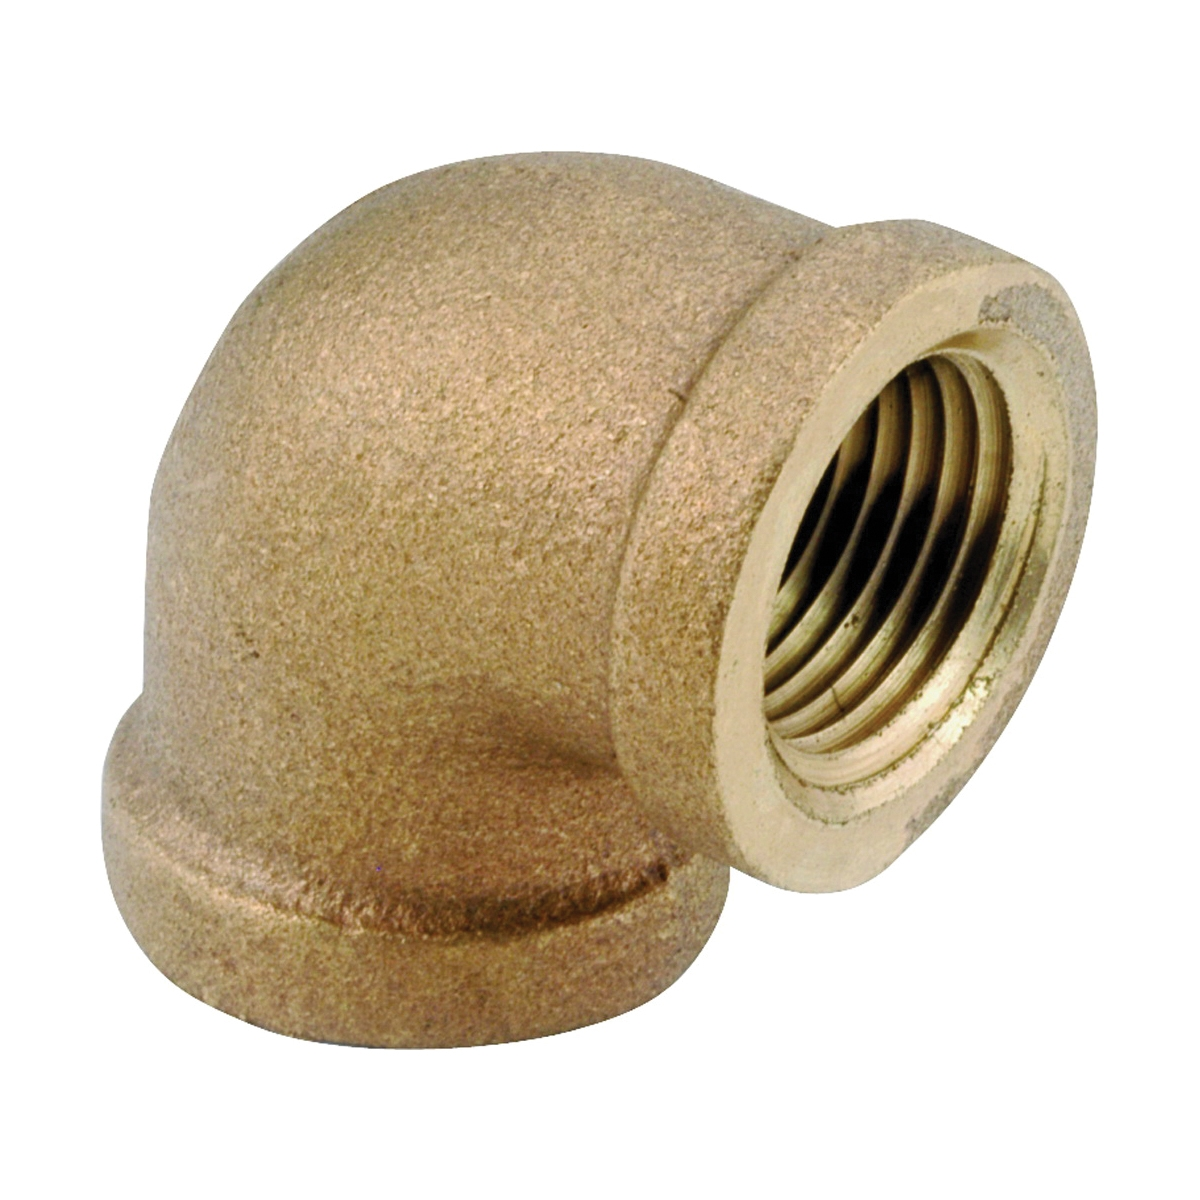 Picture of Anderson Metals 738100-12 Pipe Elbow, 3/4 in, FIP